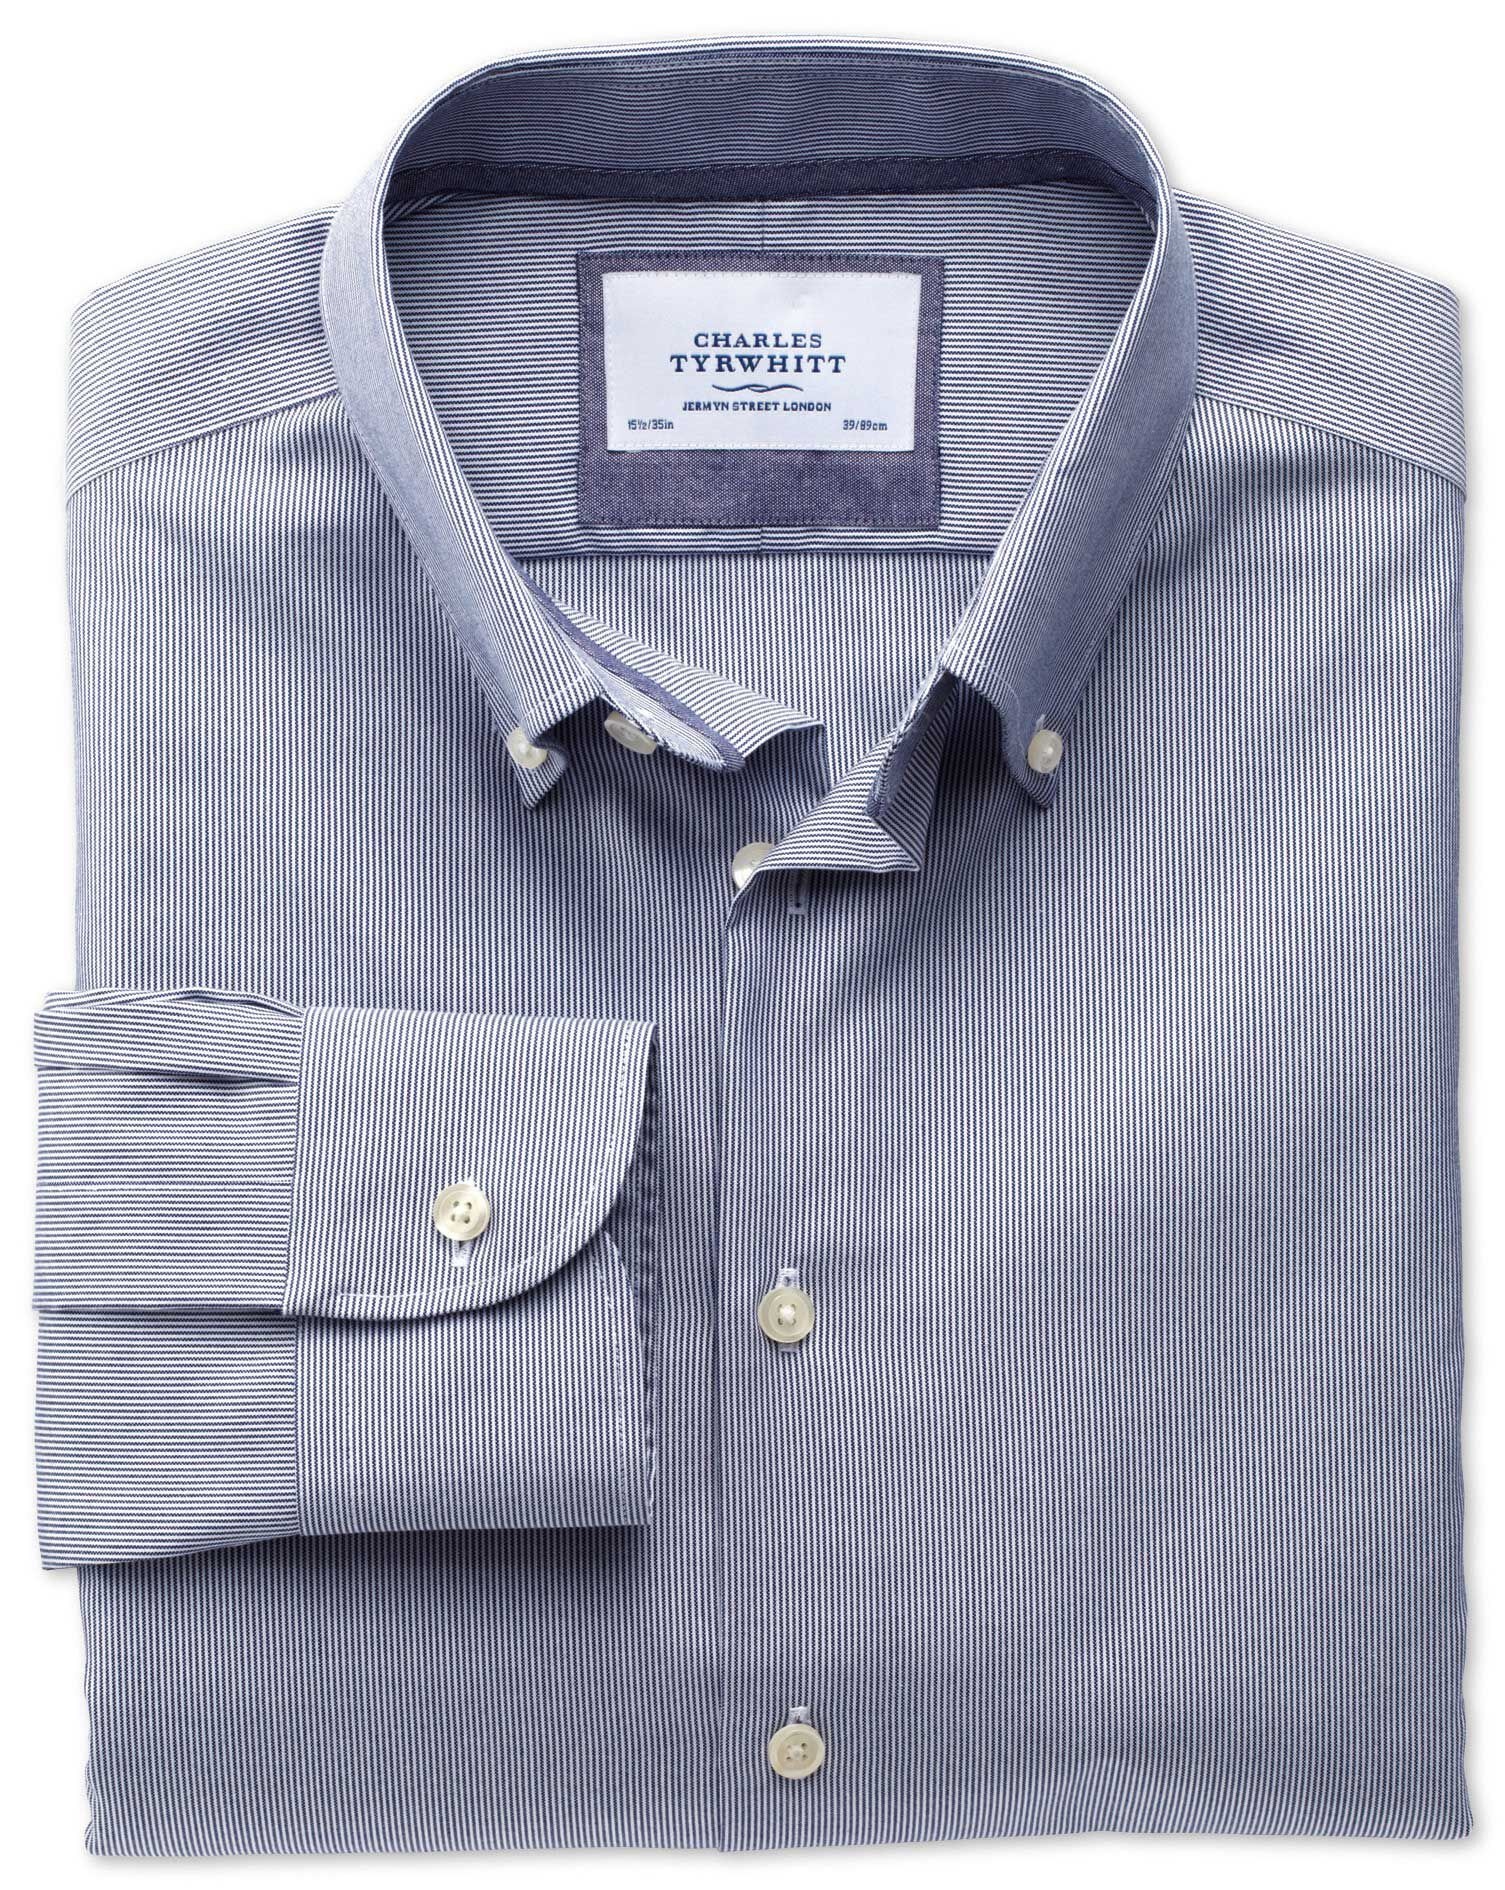 Classic Fit Button-Down Collar Non-Iron Business Casual Navy Cotton Formal Shirt Single Cuff Size 20